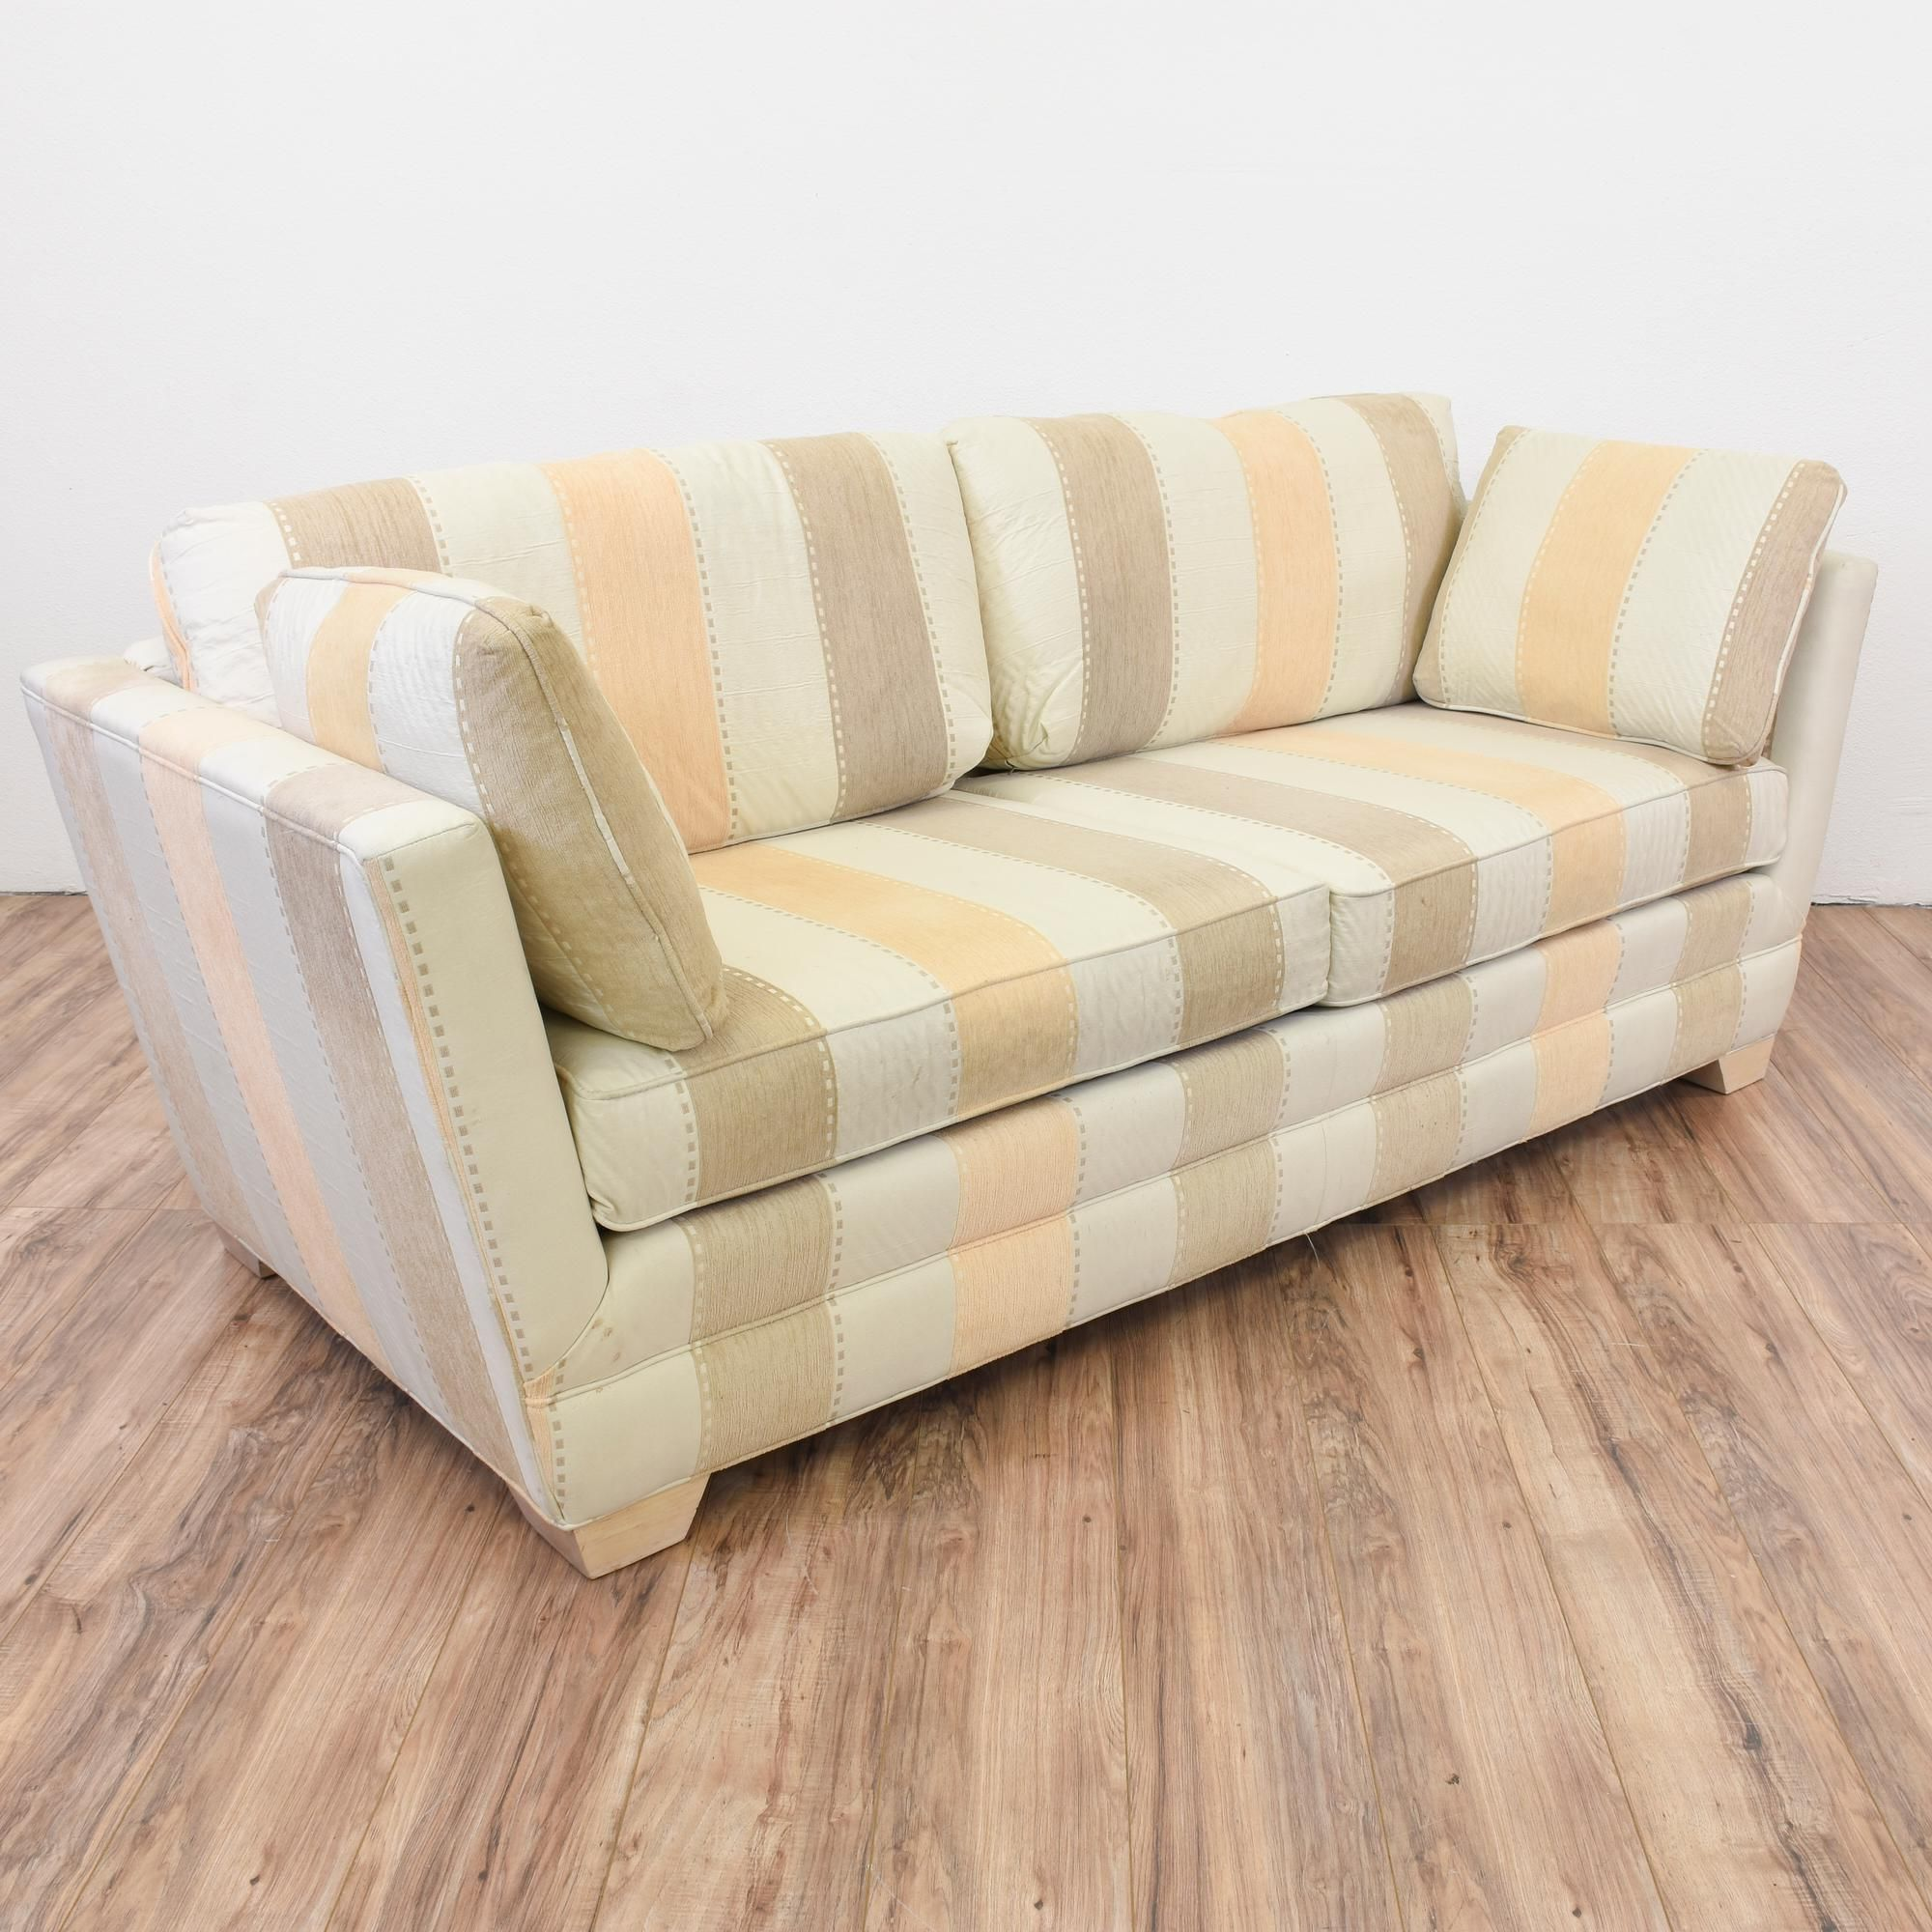 slipcover slipcovers on color pattern ideas home beautiful decor loveseat trends